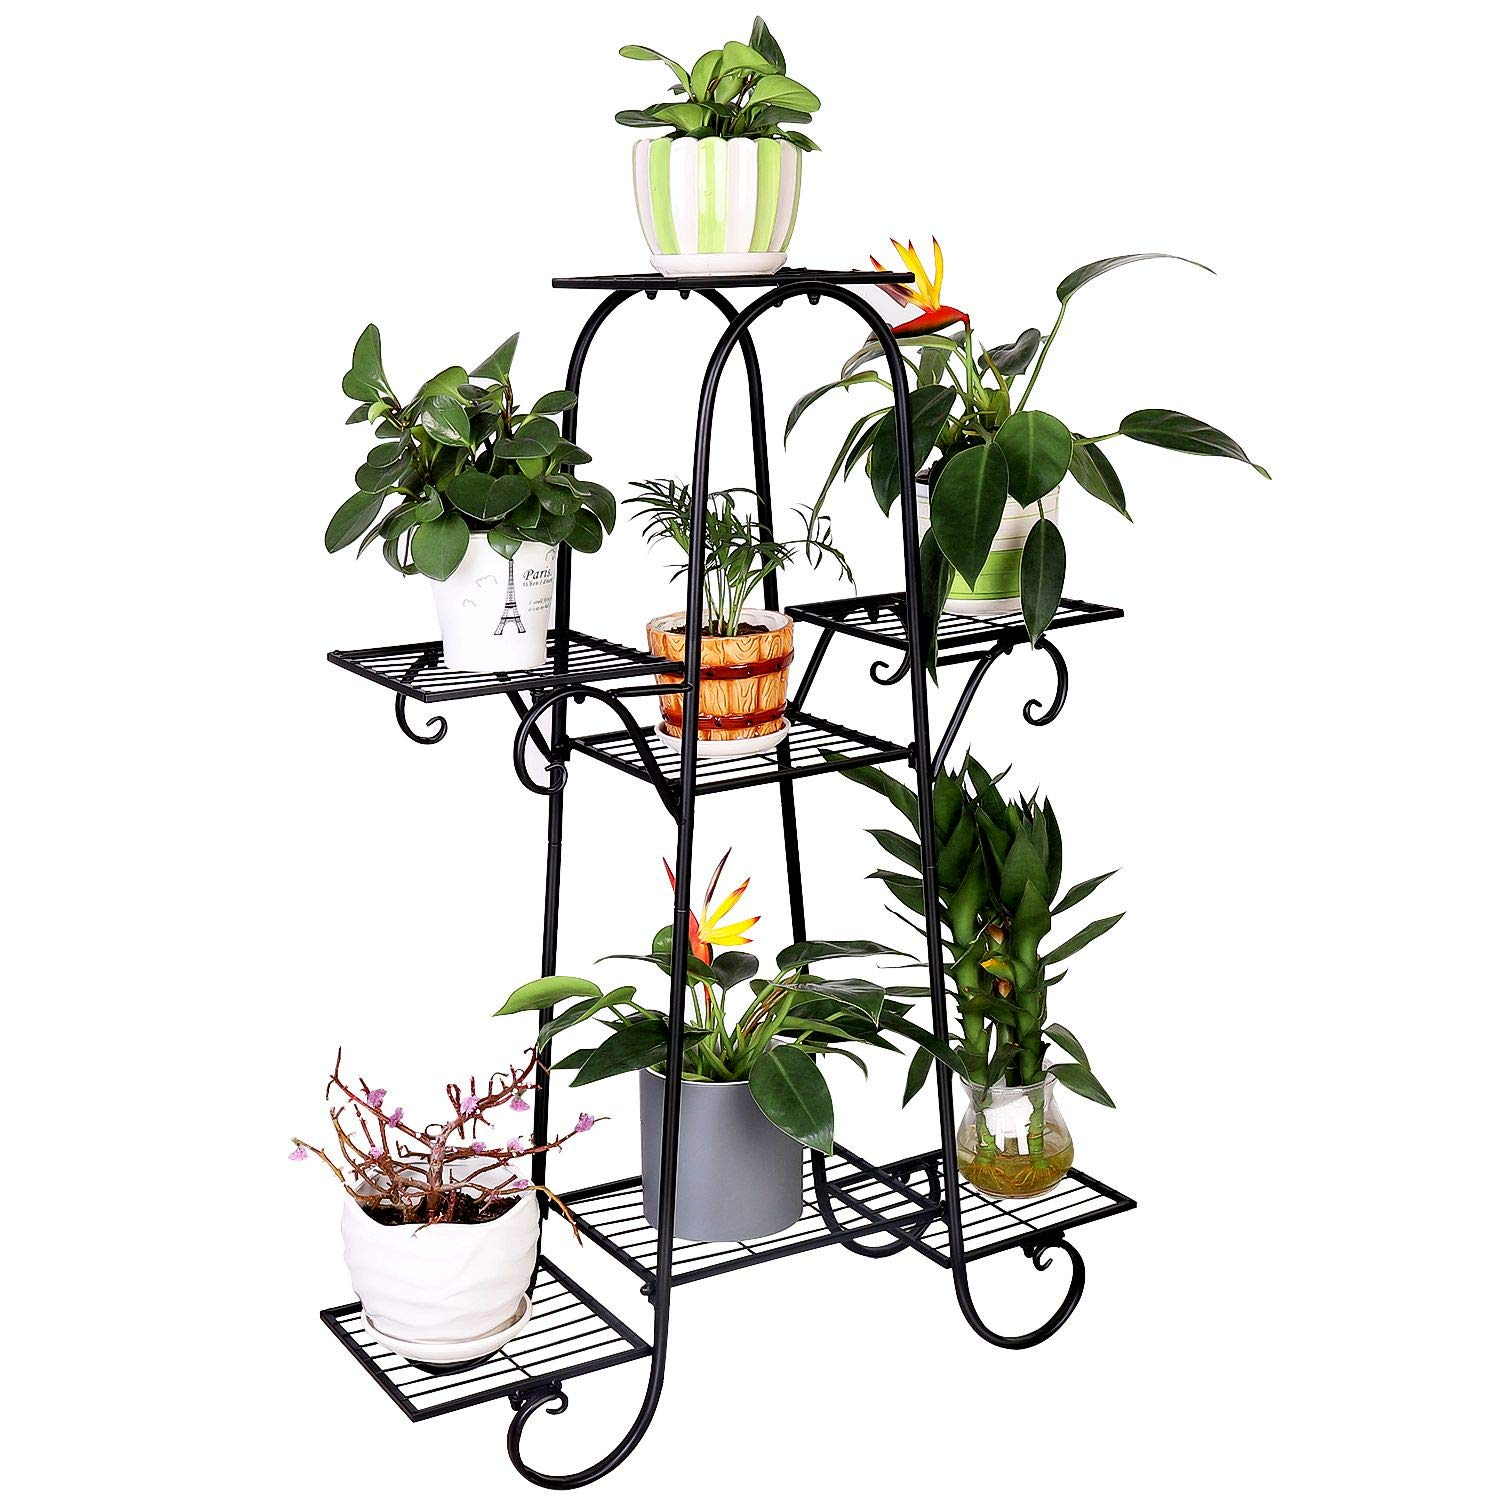 7 Tier Metal Plant Stand Shelf Indoor Wrought Iron Plant Stands Outdoor Multilayer Potted Planters Display Rack Patio Garden, Size: 66 x 22 x 102cm by unho